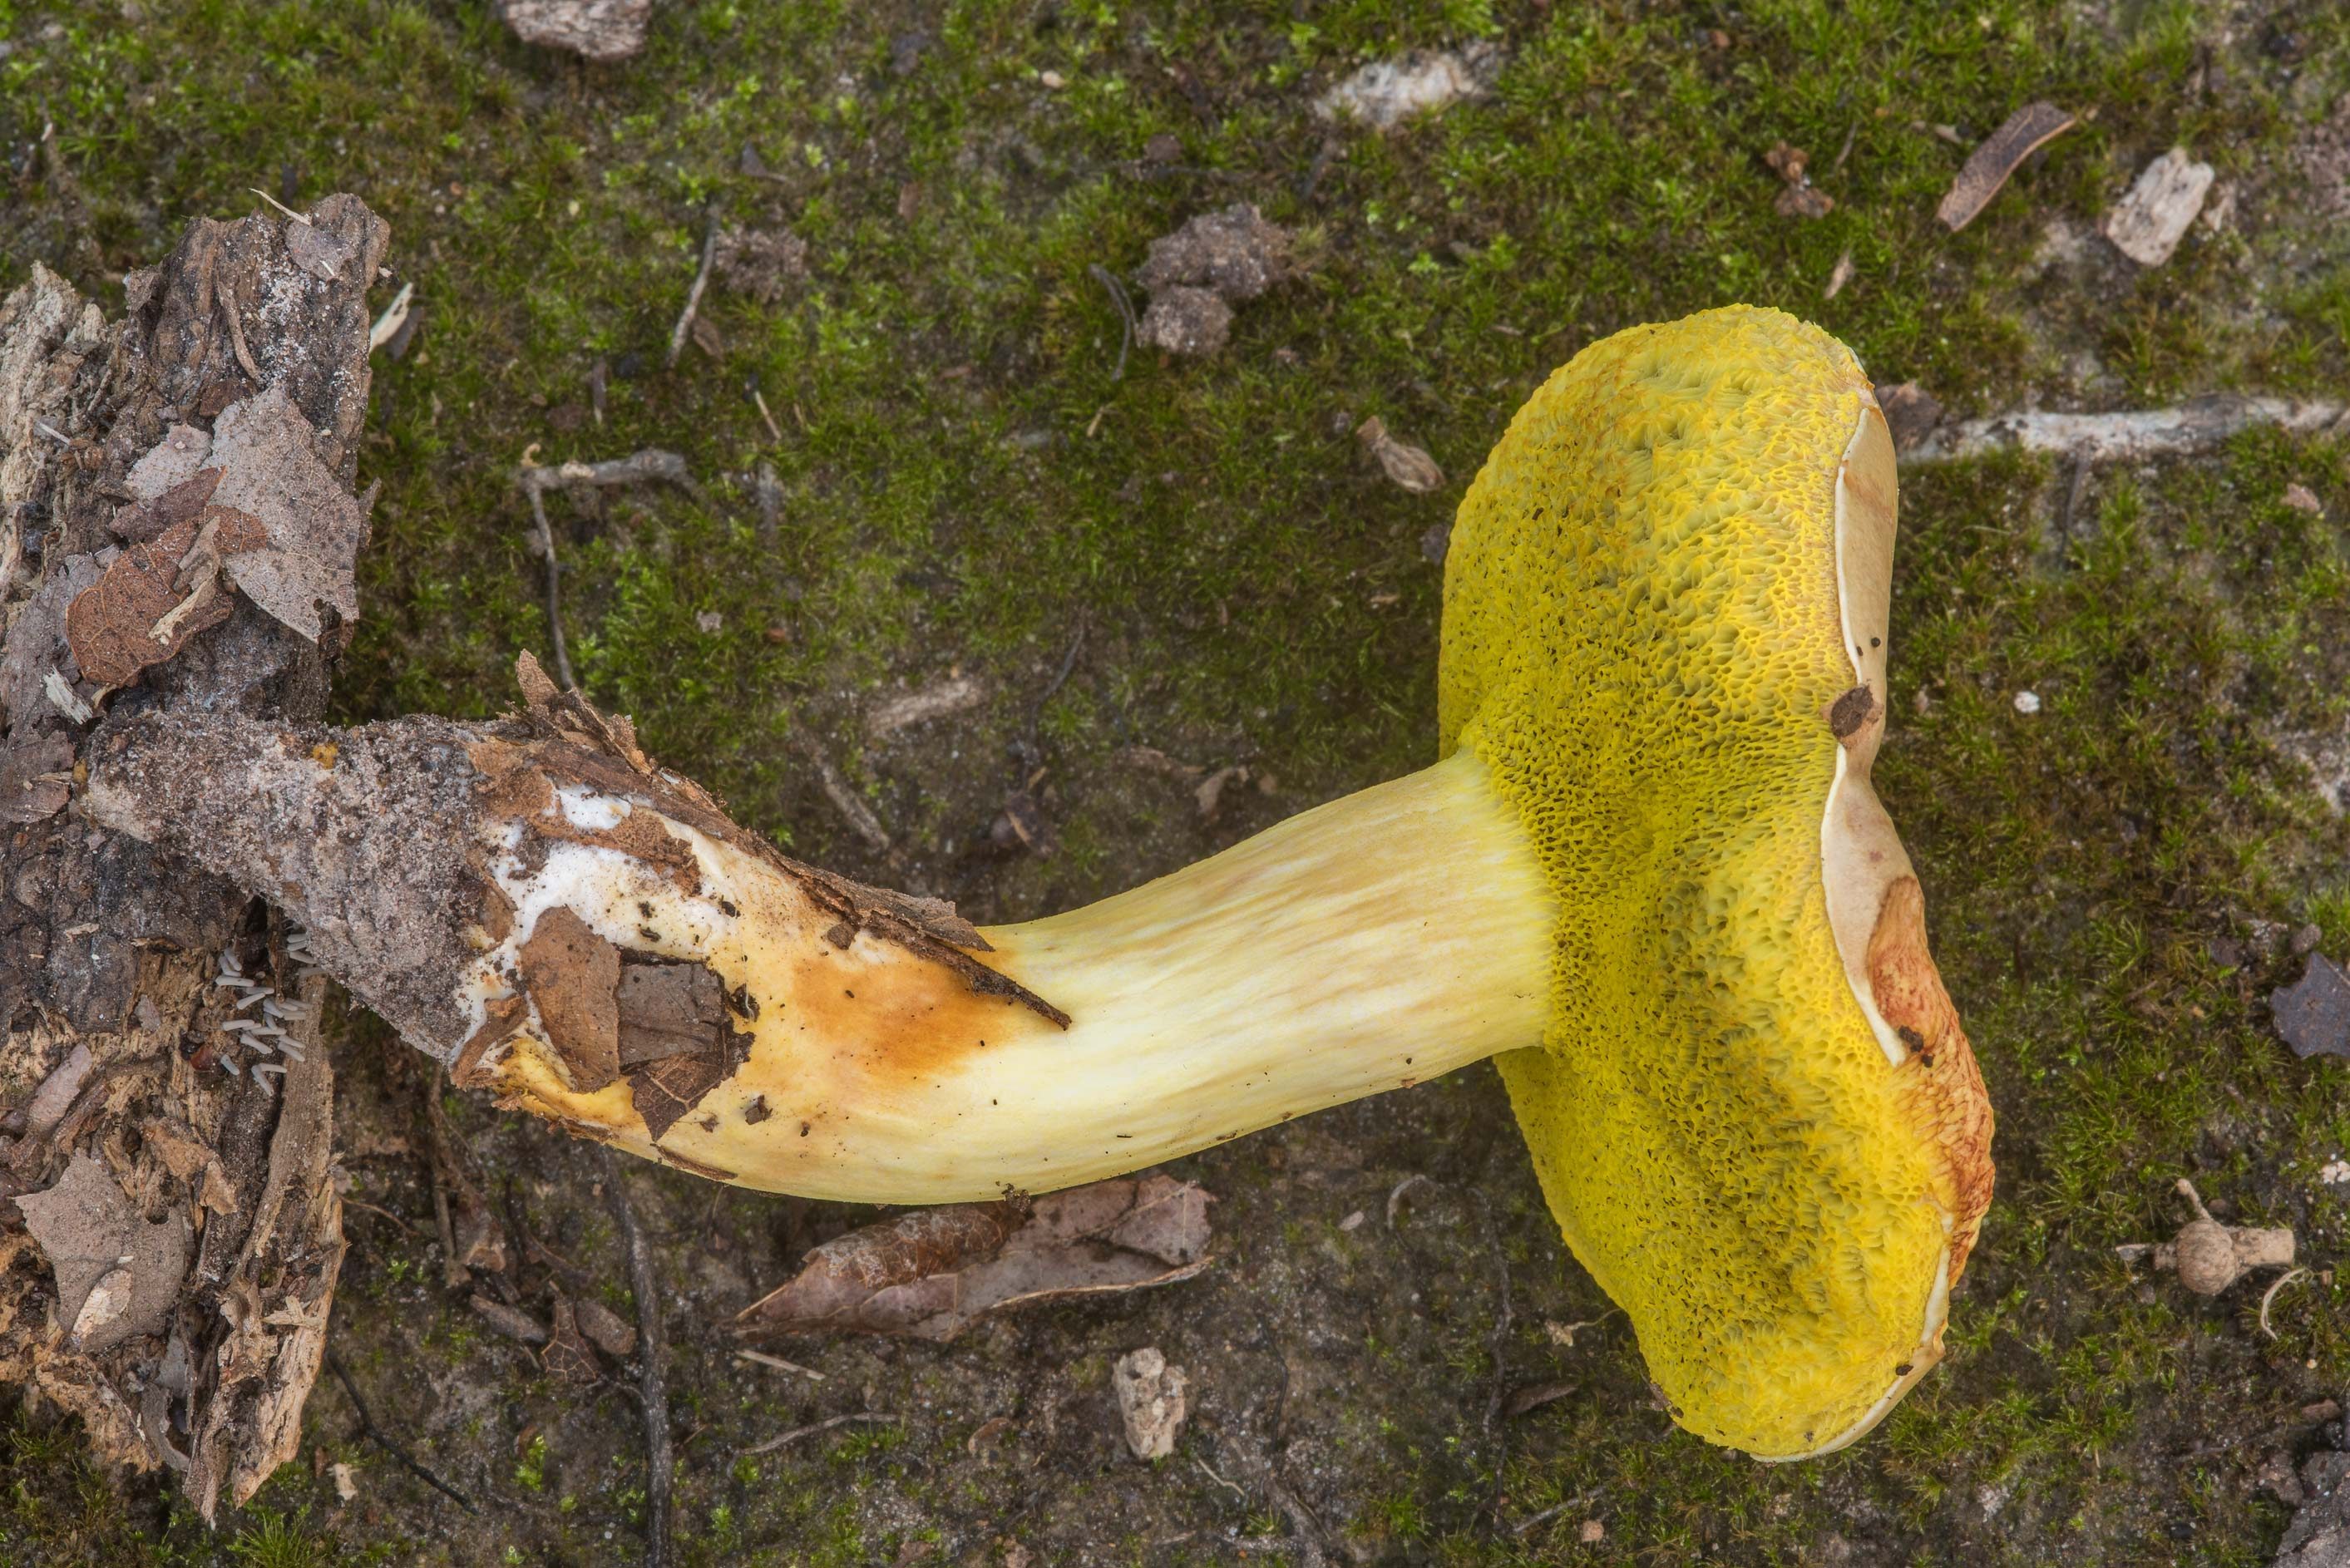 Underside of Aureoboletus auriporus mushroom in Lick Creek Park. College Station, Texas